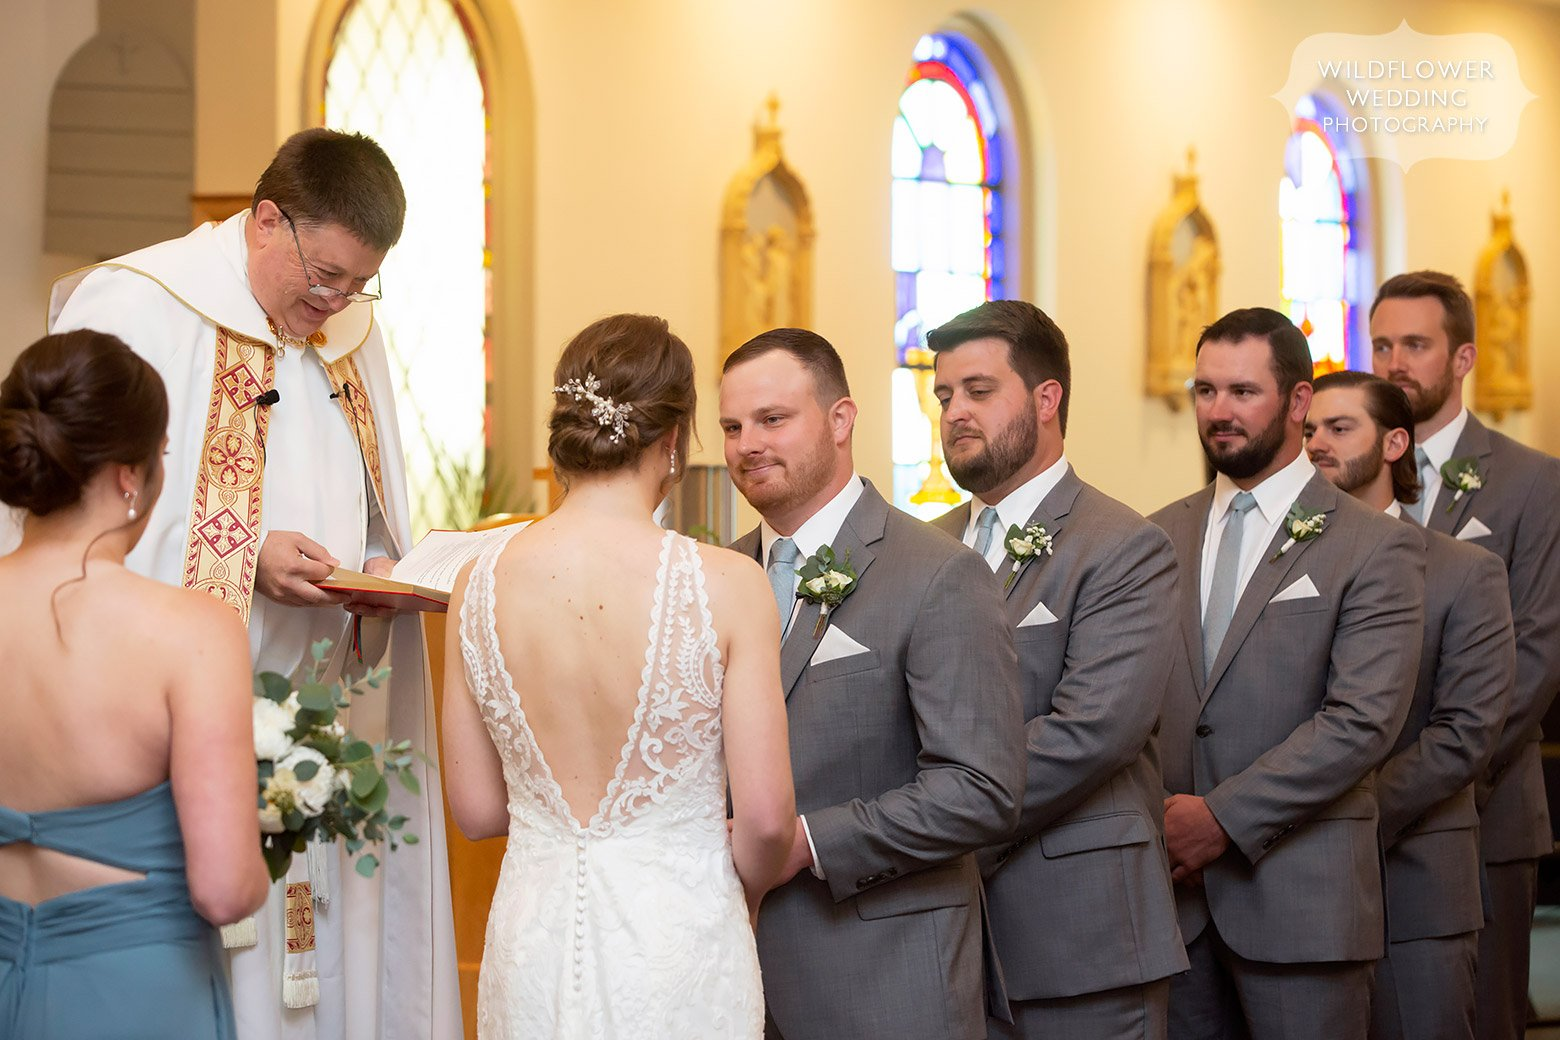 Groom reads vows to bride in church in Mid-MO.